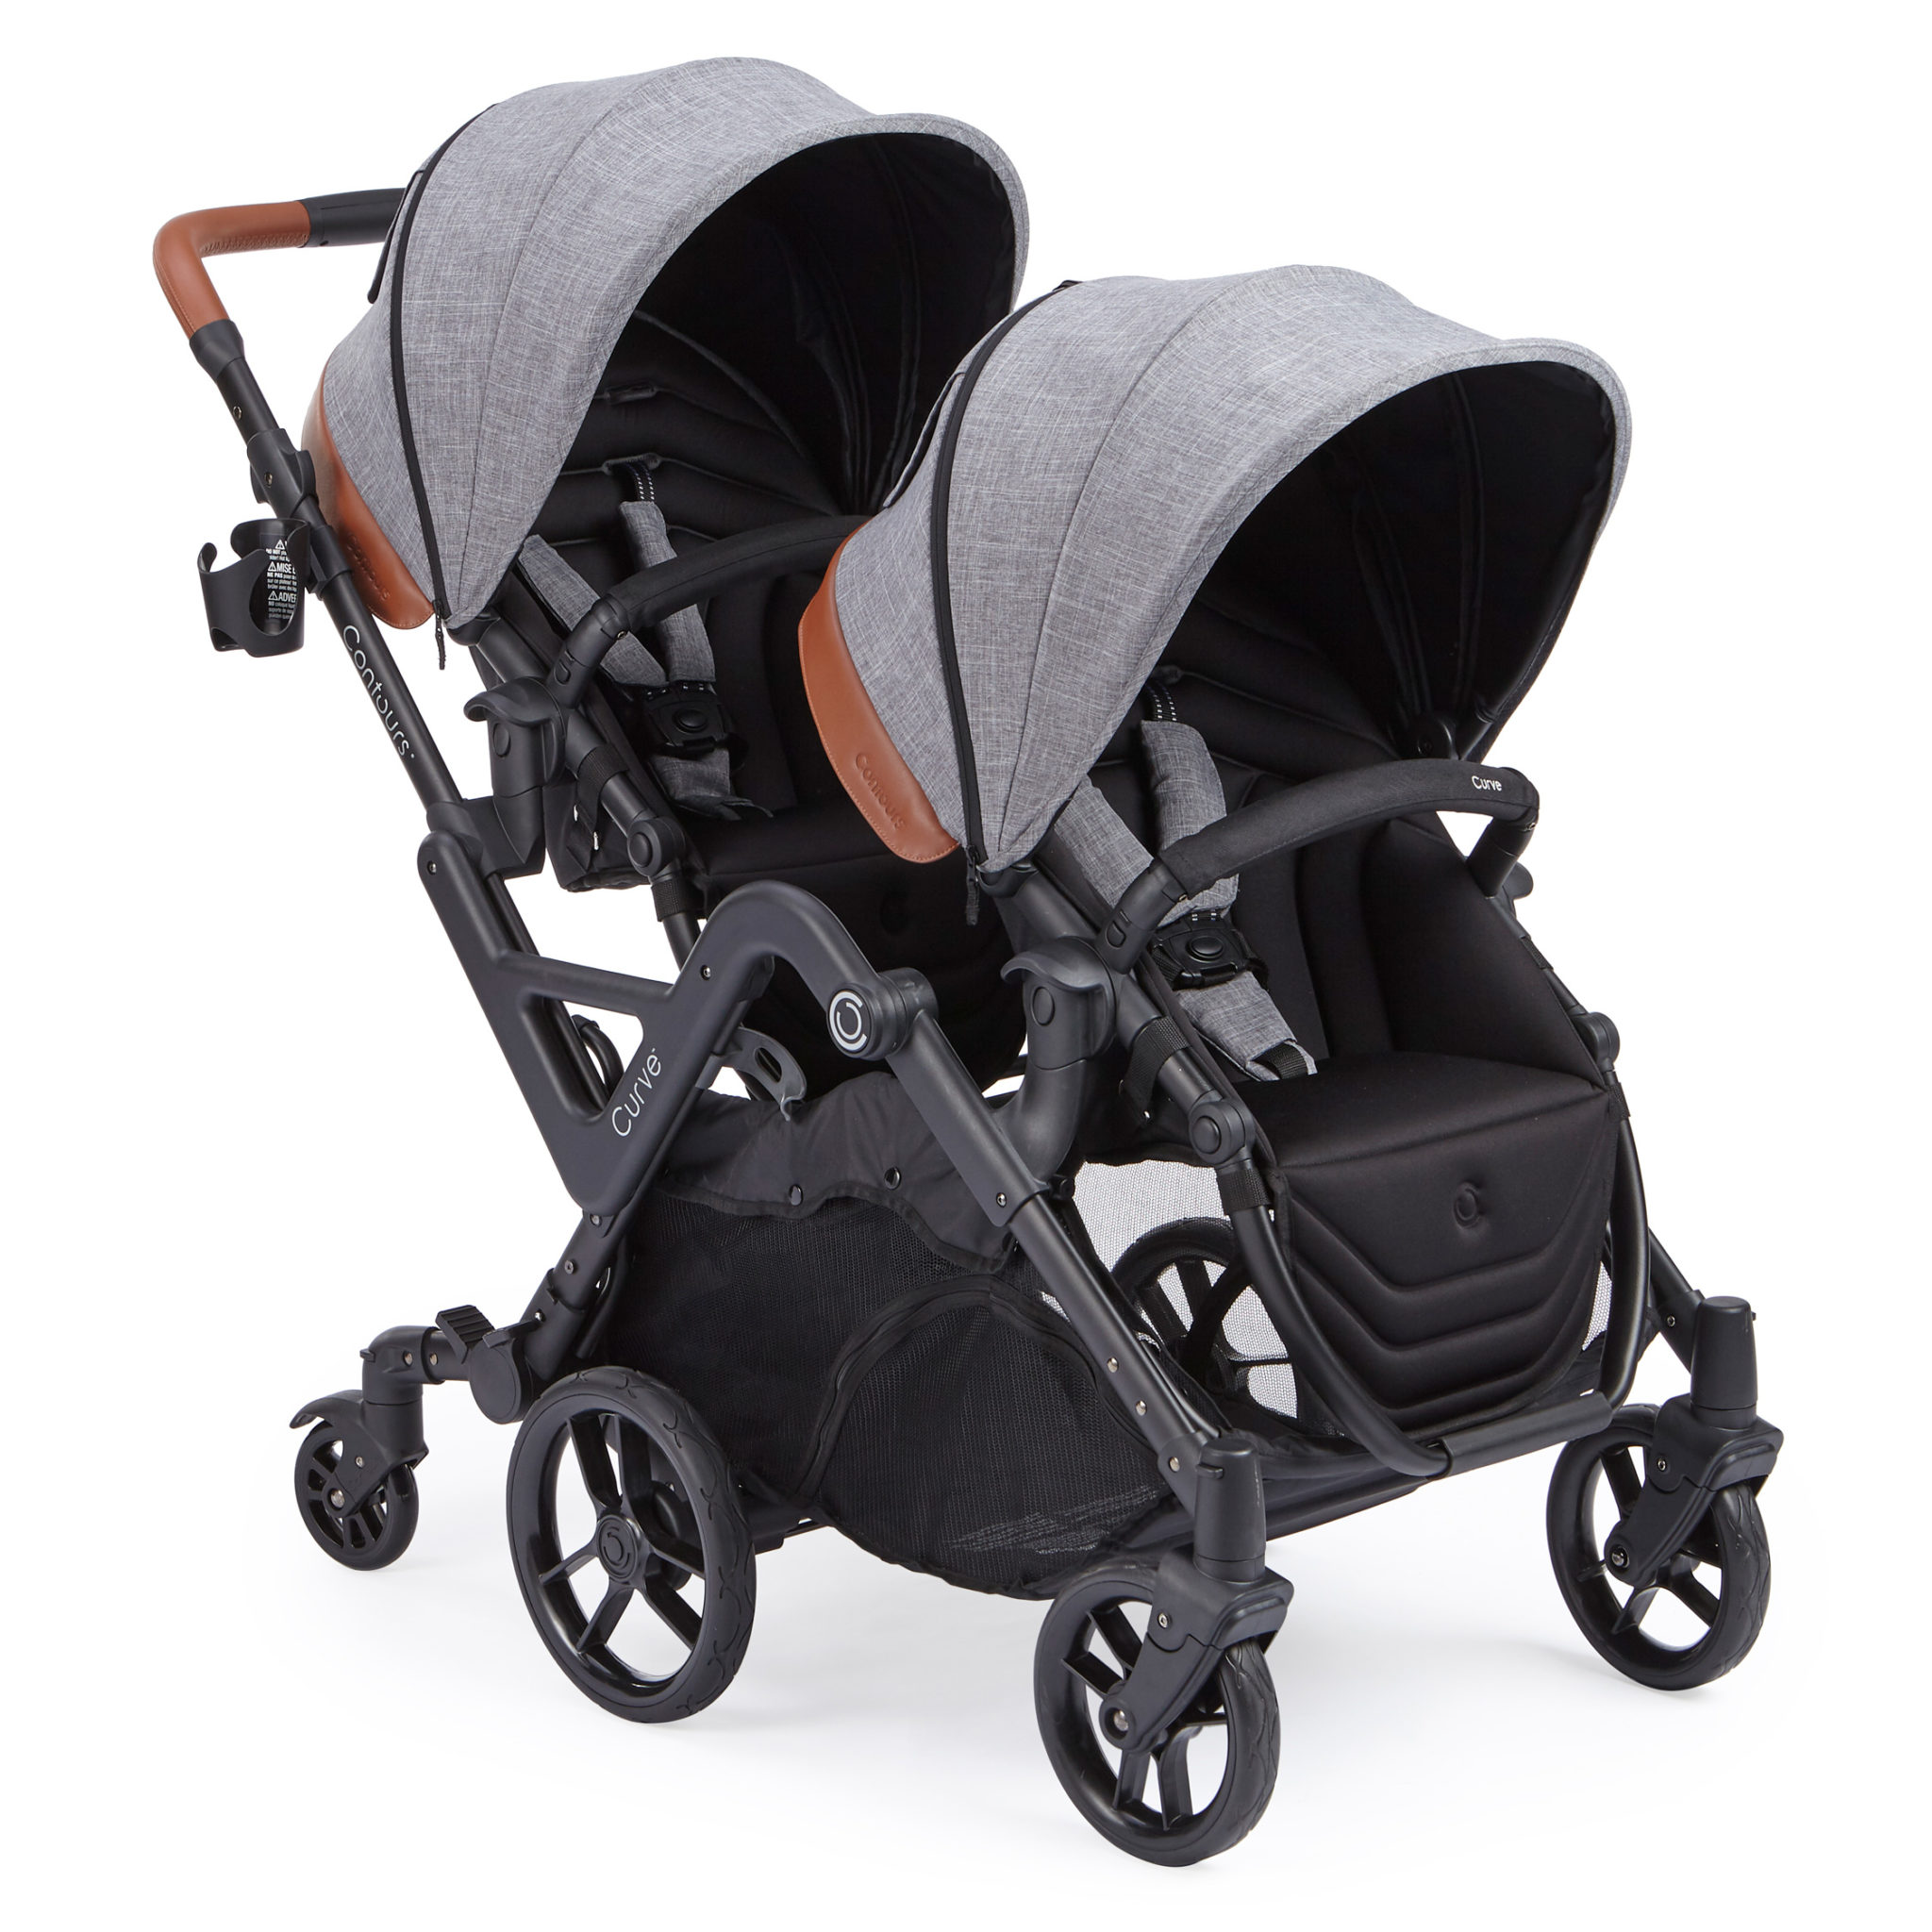 Baby Pram Designer Double Stroller Baby Carrier Compact Stroller Contours